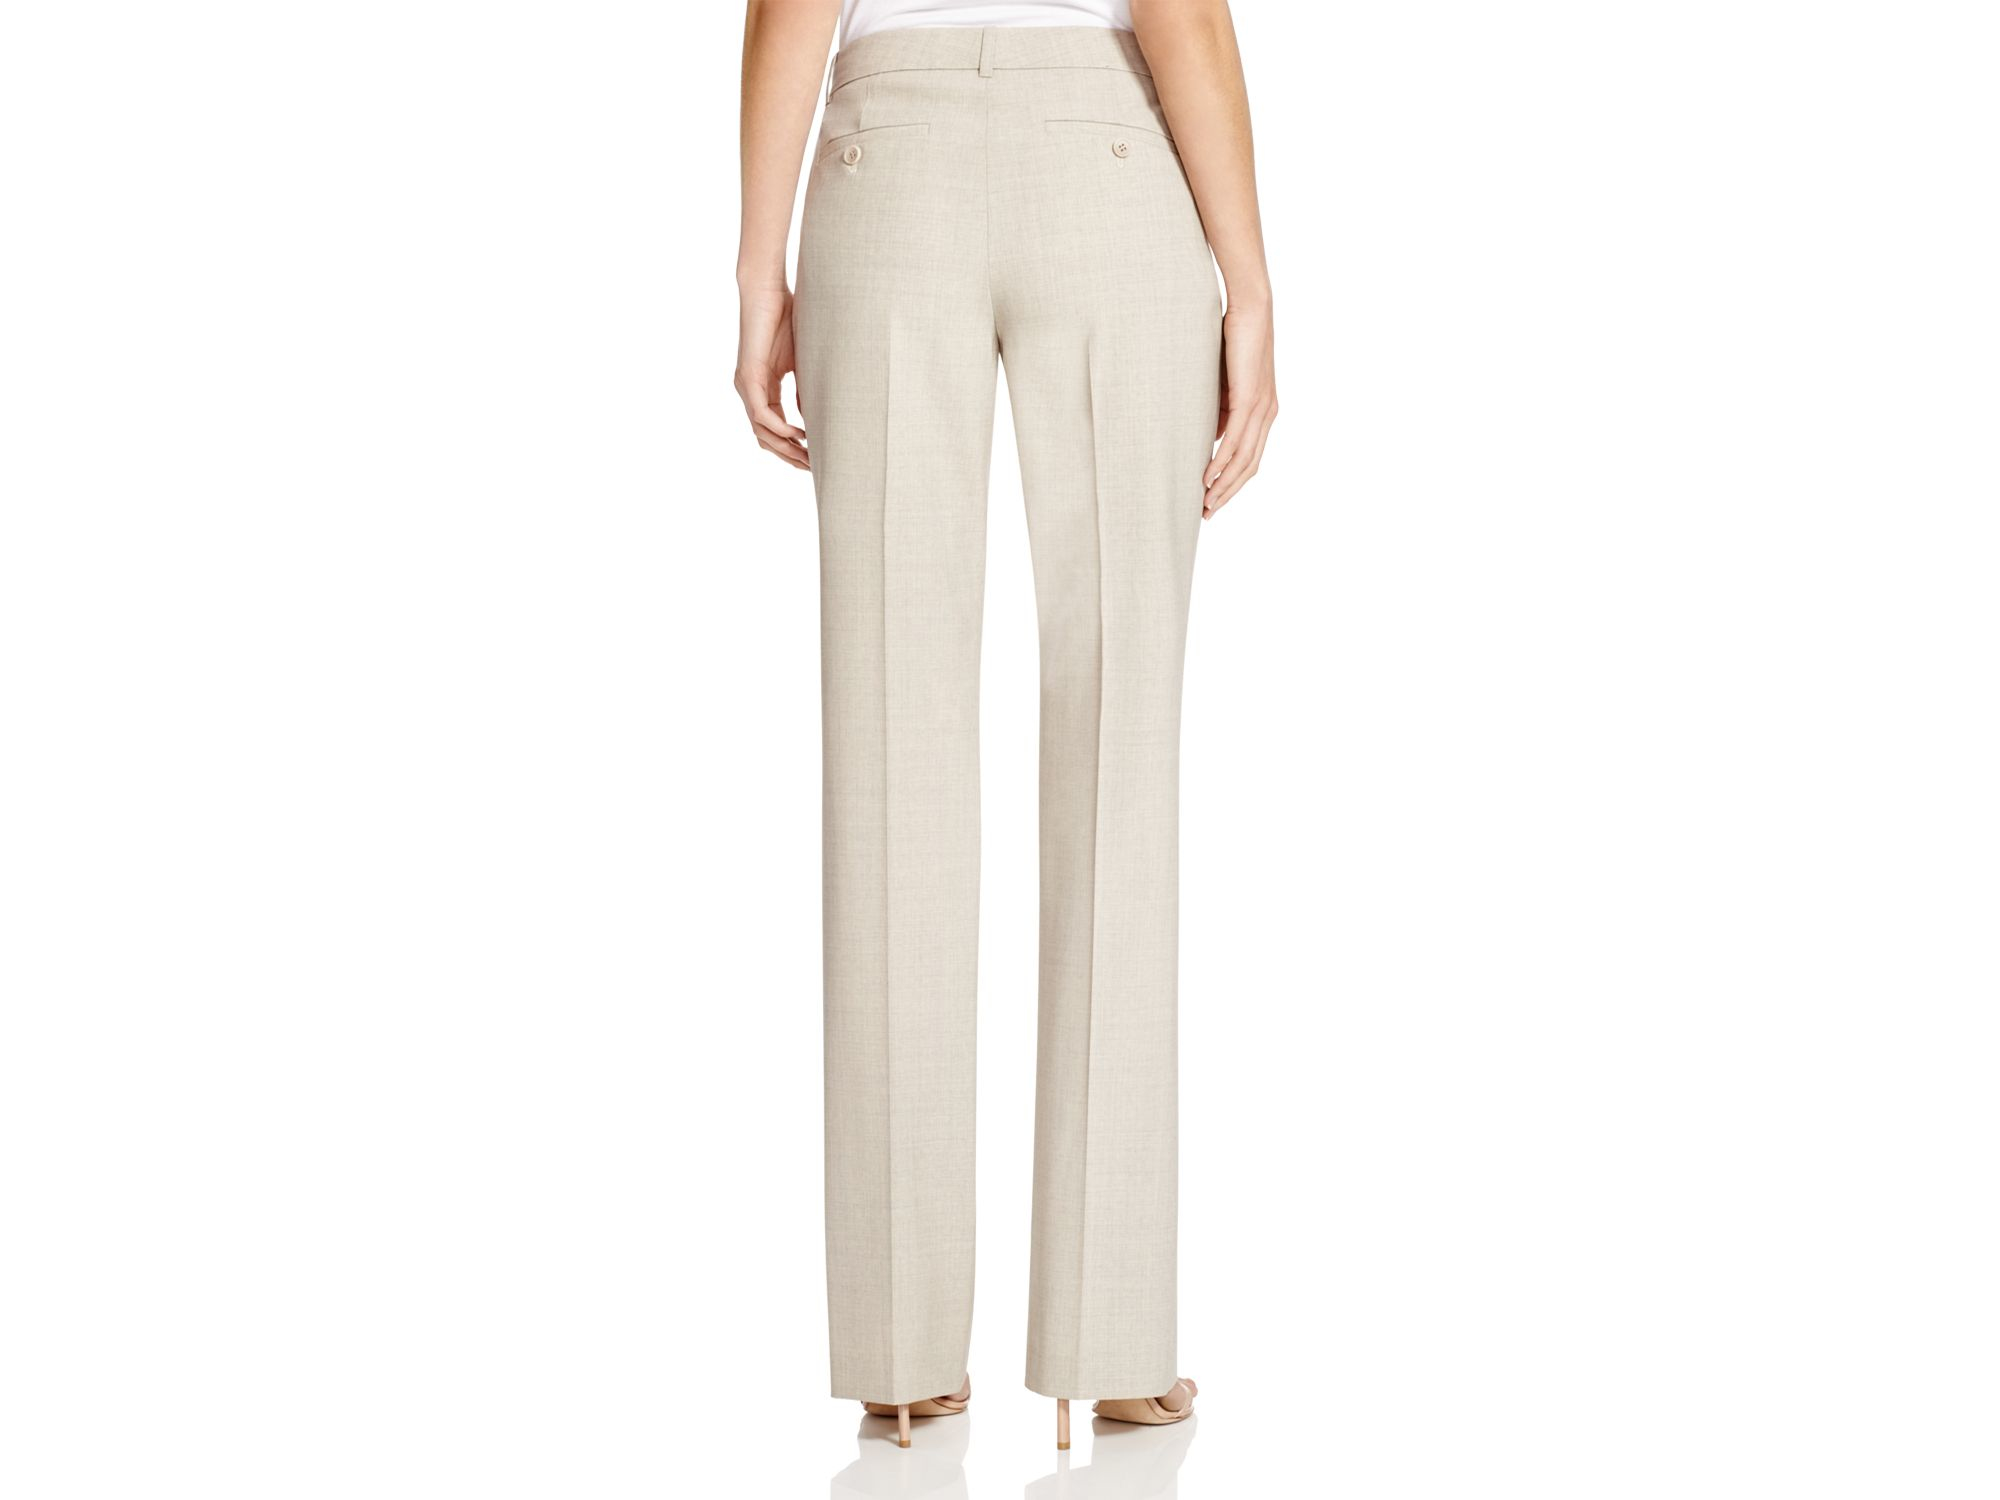 fdb4c3ede4 Theory Pants - Custom Max 2 Edition in Natural - Lyst